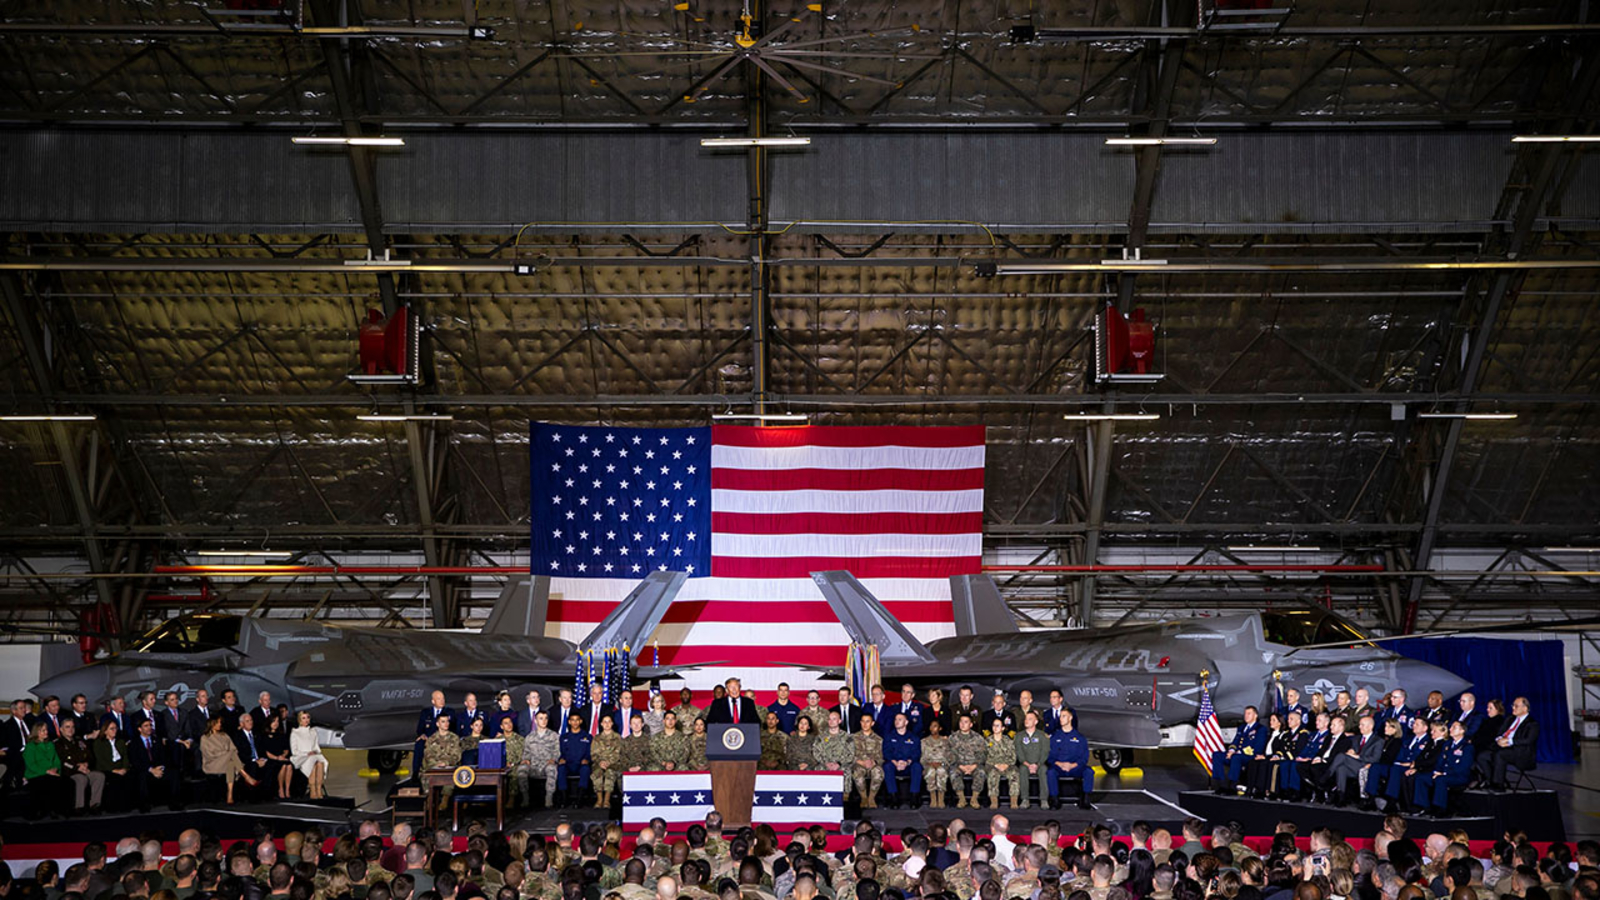 US President Trump signs National Defense Authorization Act for Fiscal Year 2020, Suitland, Usa - 20 Dec 2019